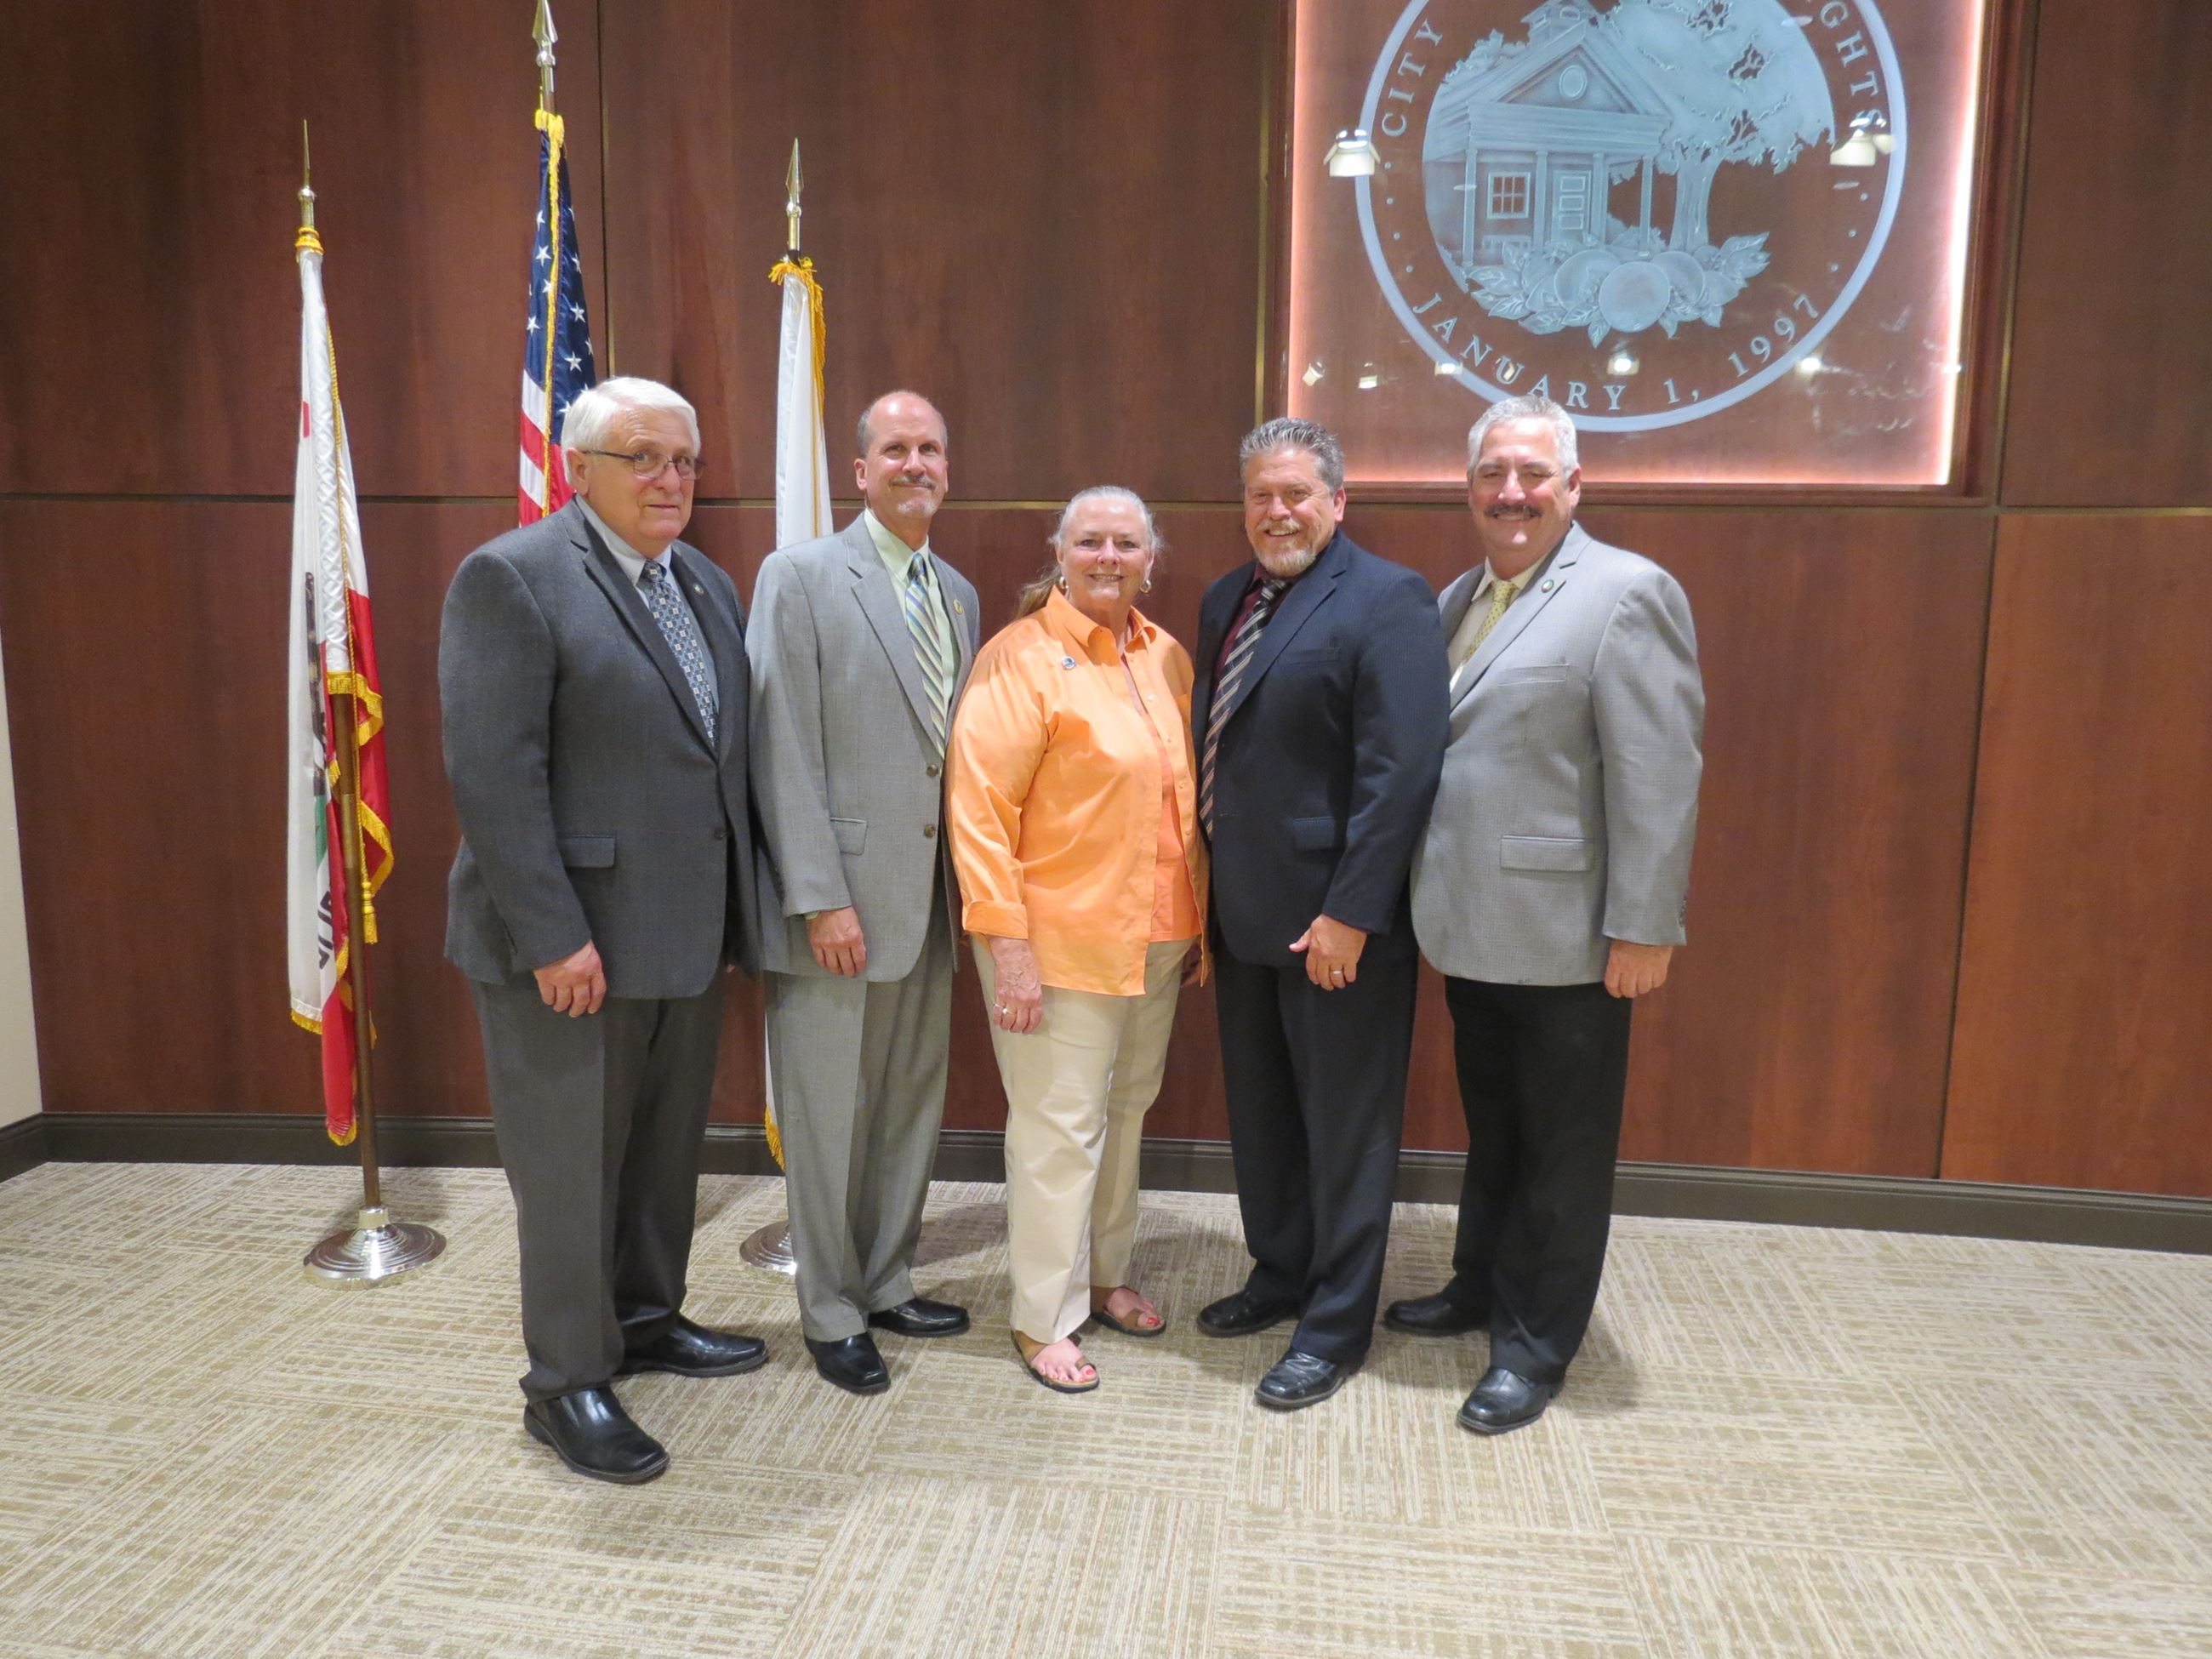 City Council Picture